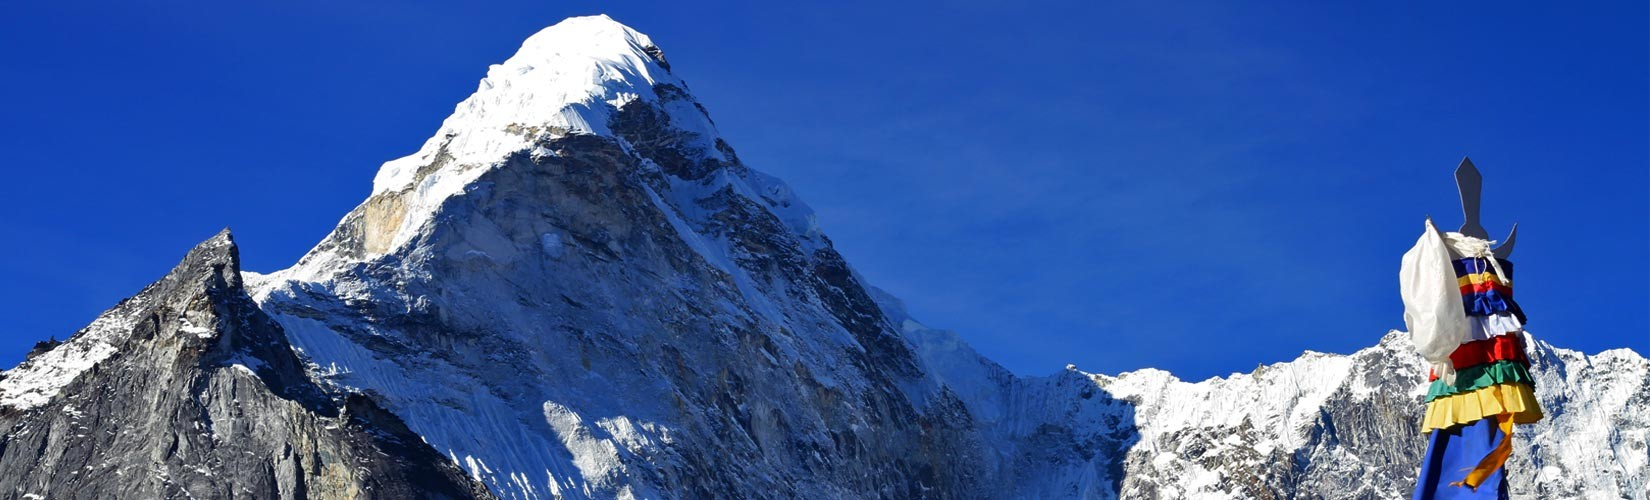 Major attraction of Everest Base Camp 14 Days Trekking Itinerary